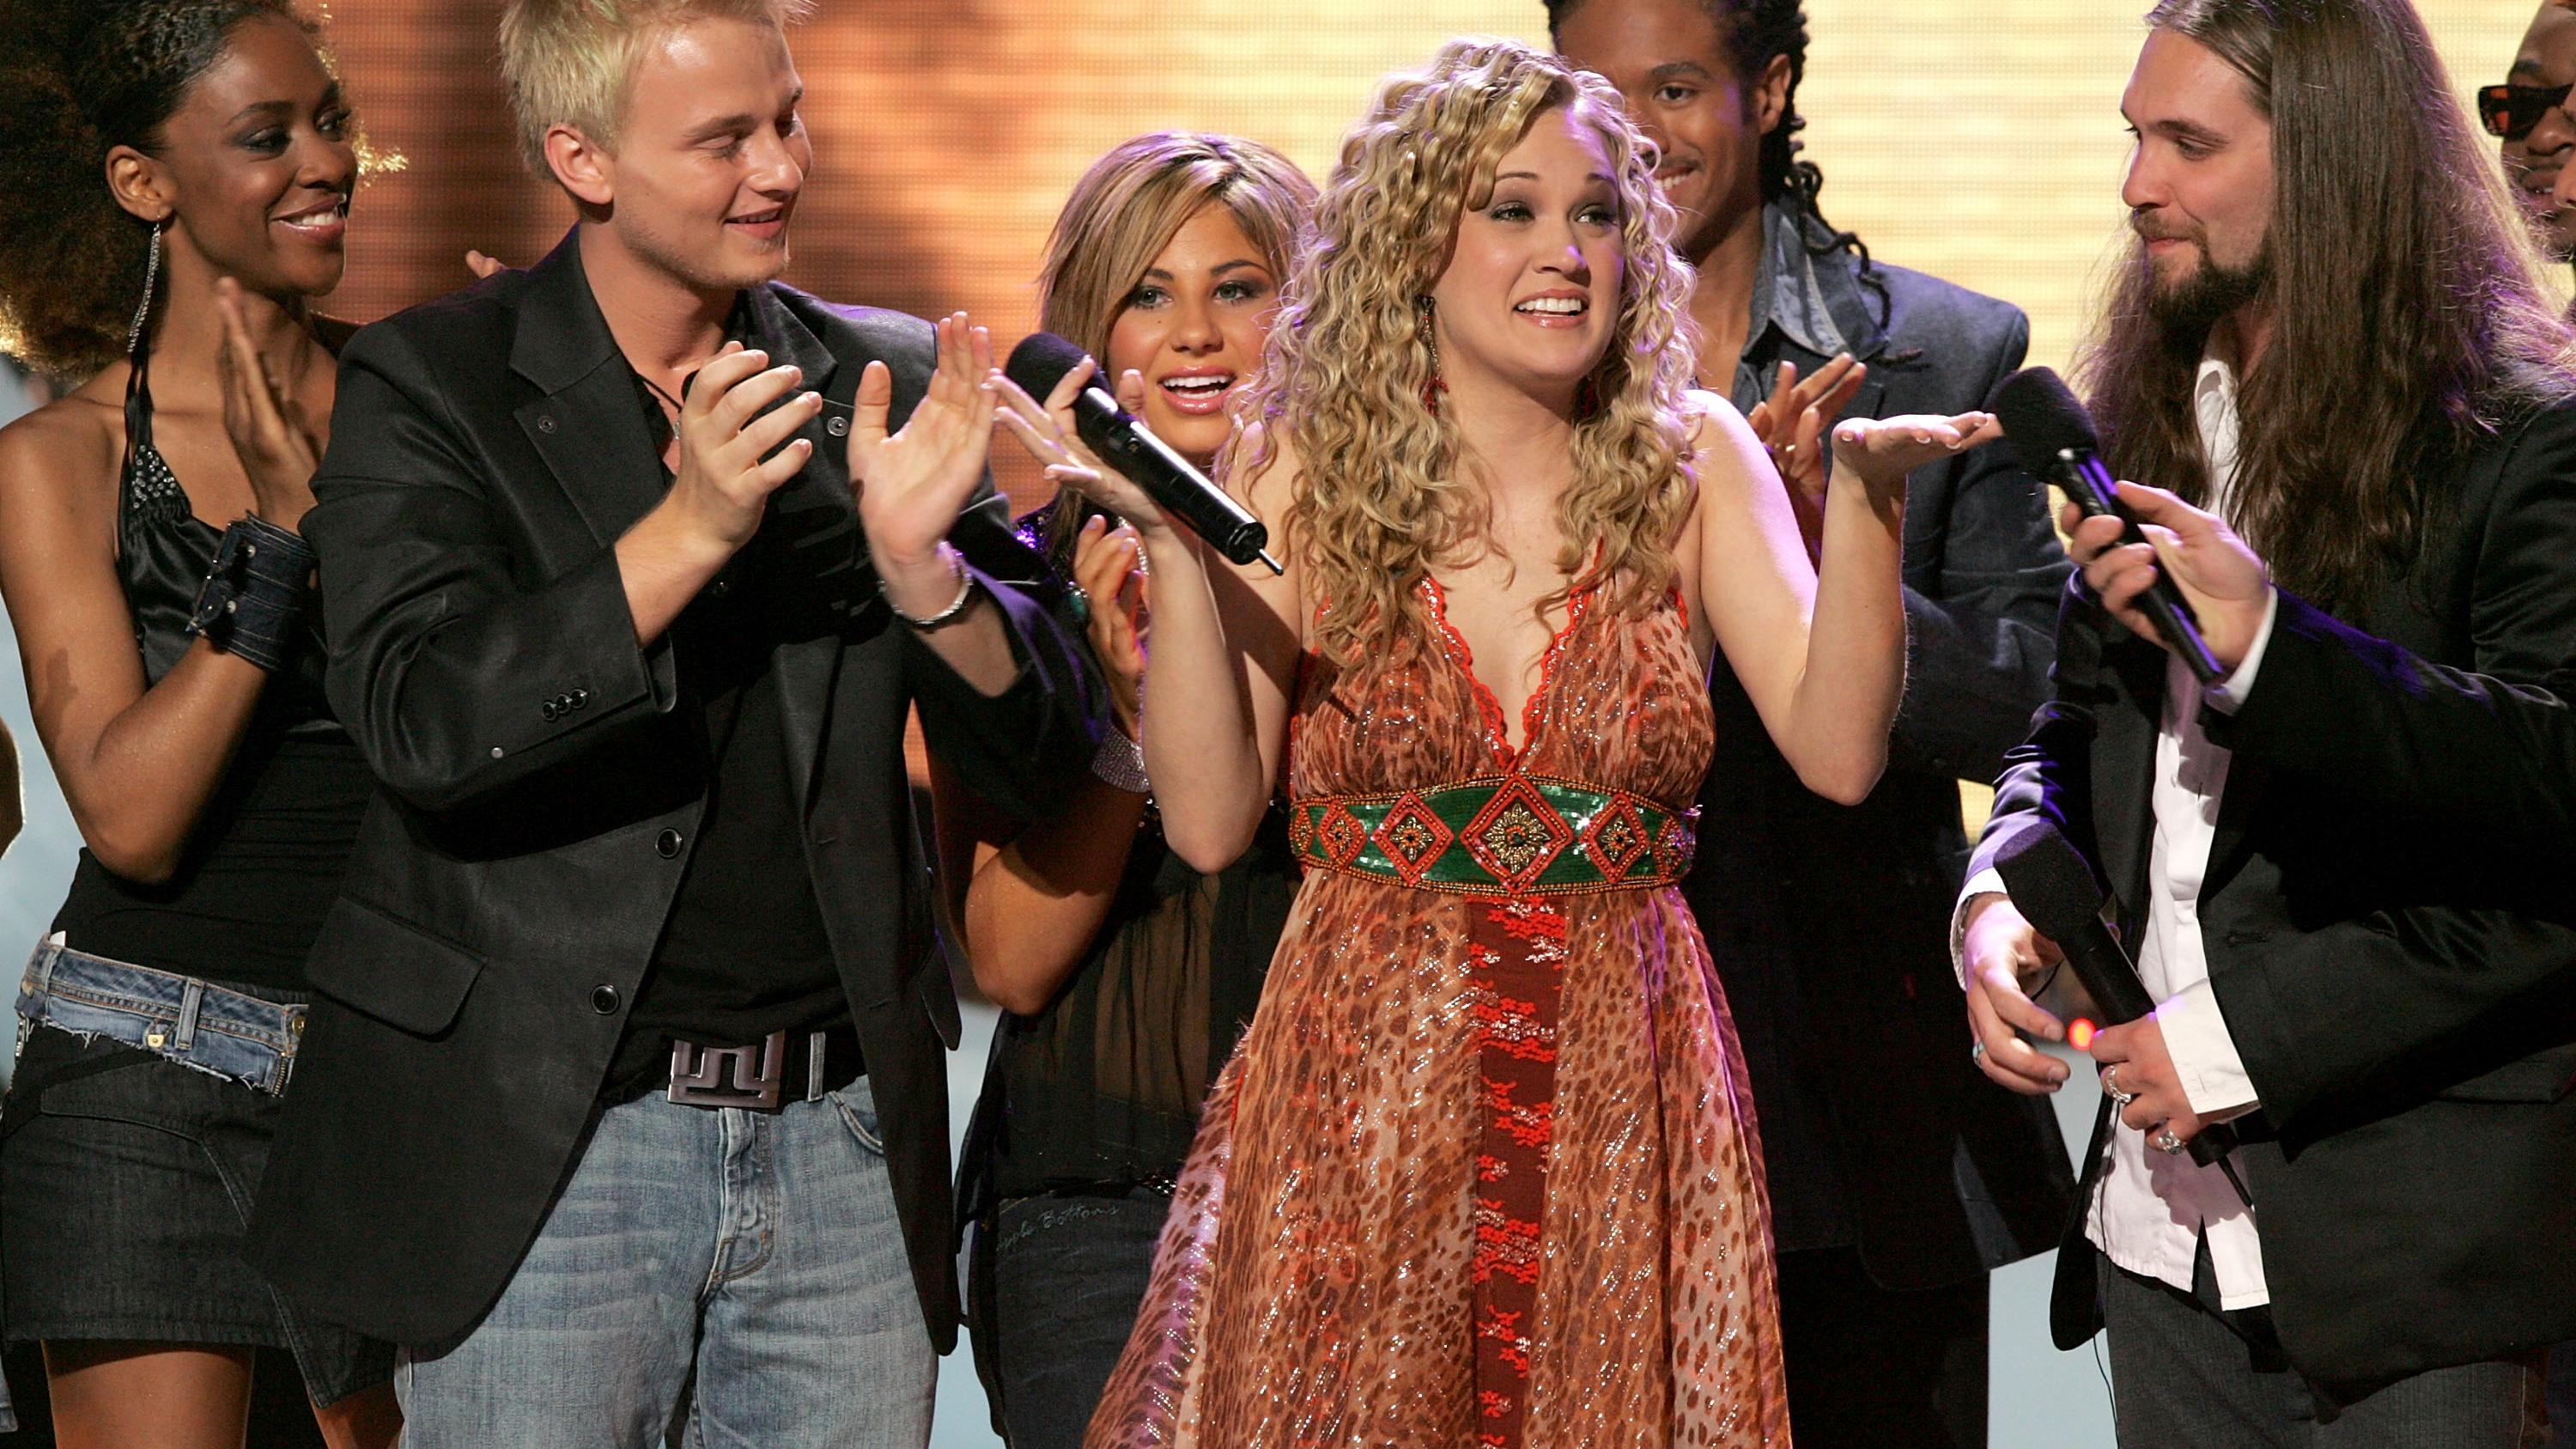 Carrie Underwood is crowned the American Idol winner on May 25, 2005. (Photo by Kevin Winter/Getty Images)